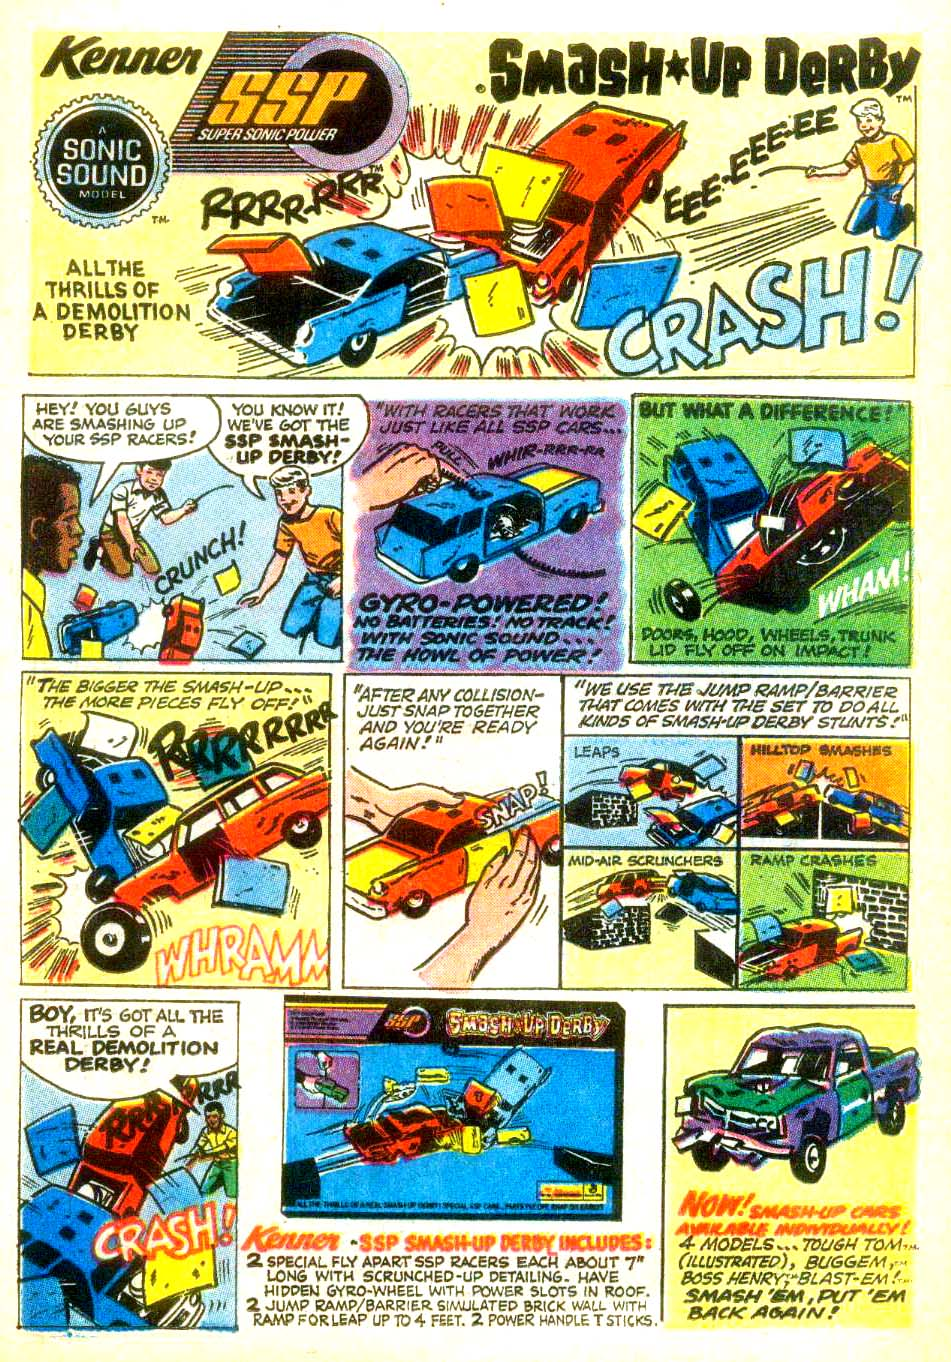 1972 Kenner Fun Catalog (5)